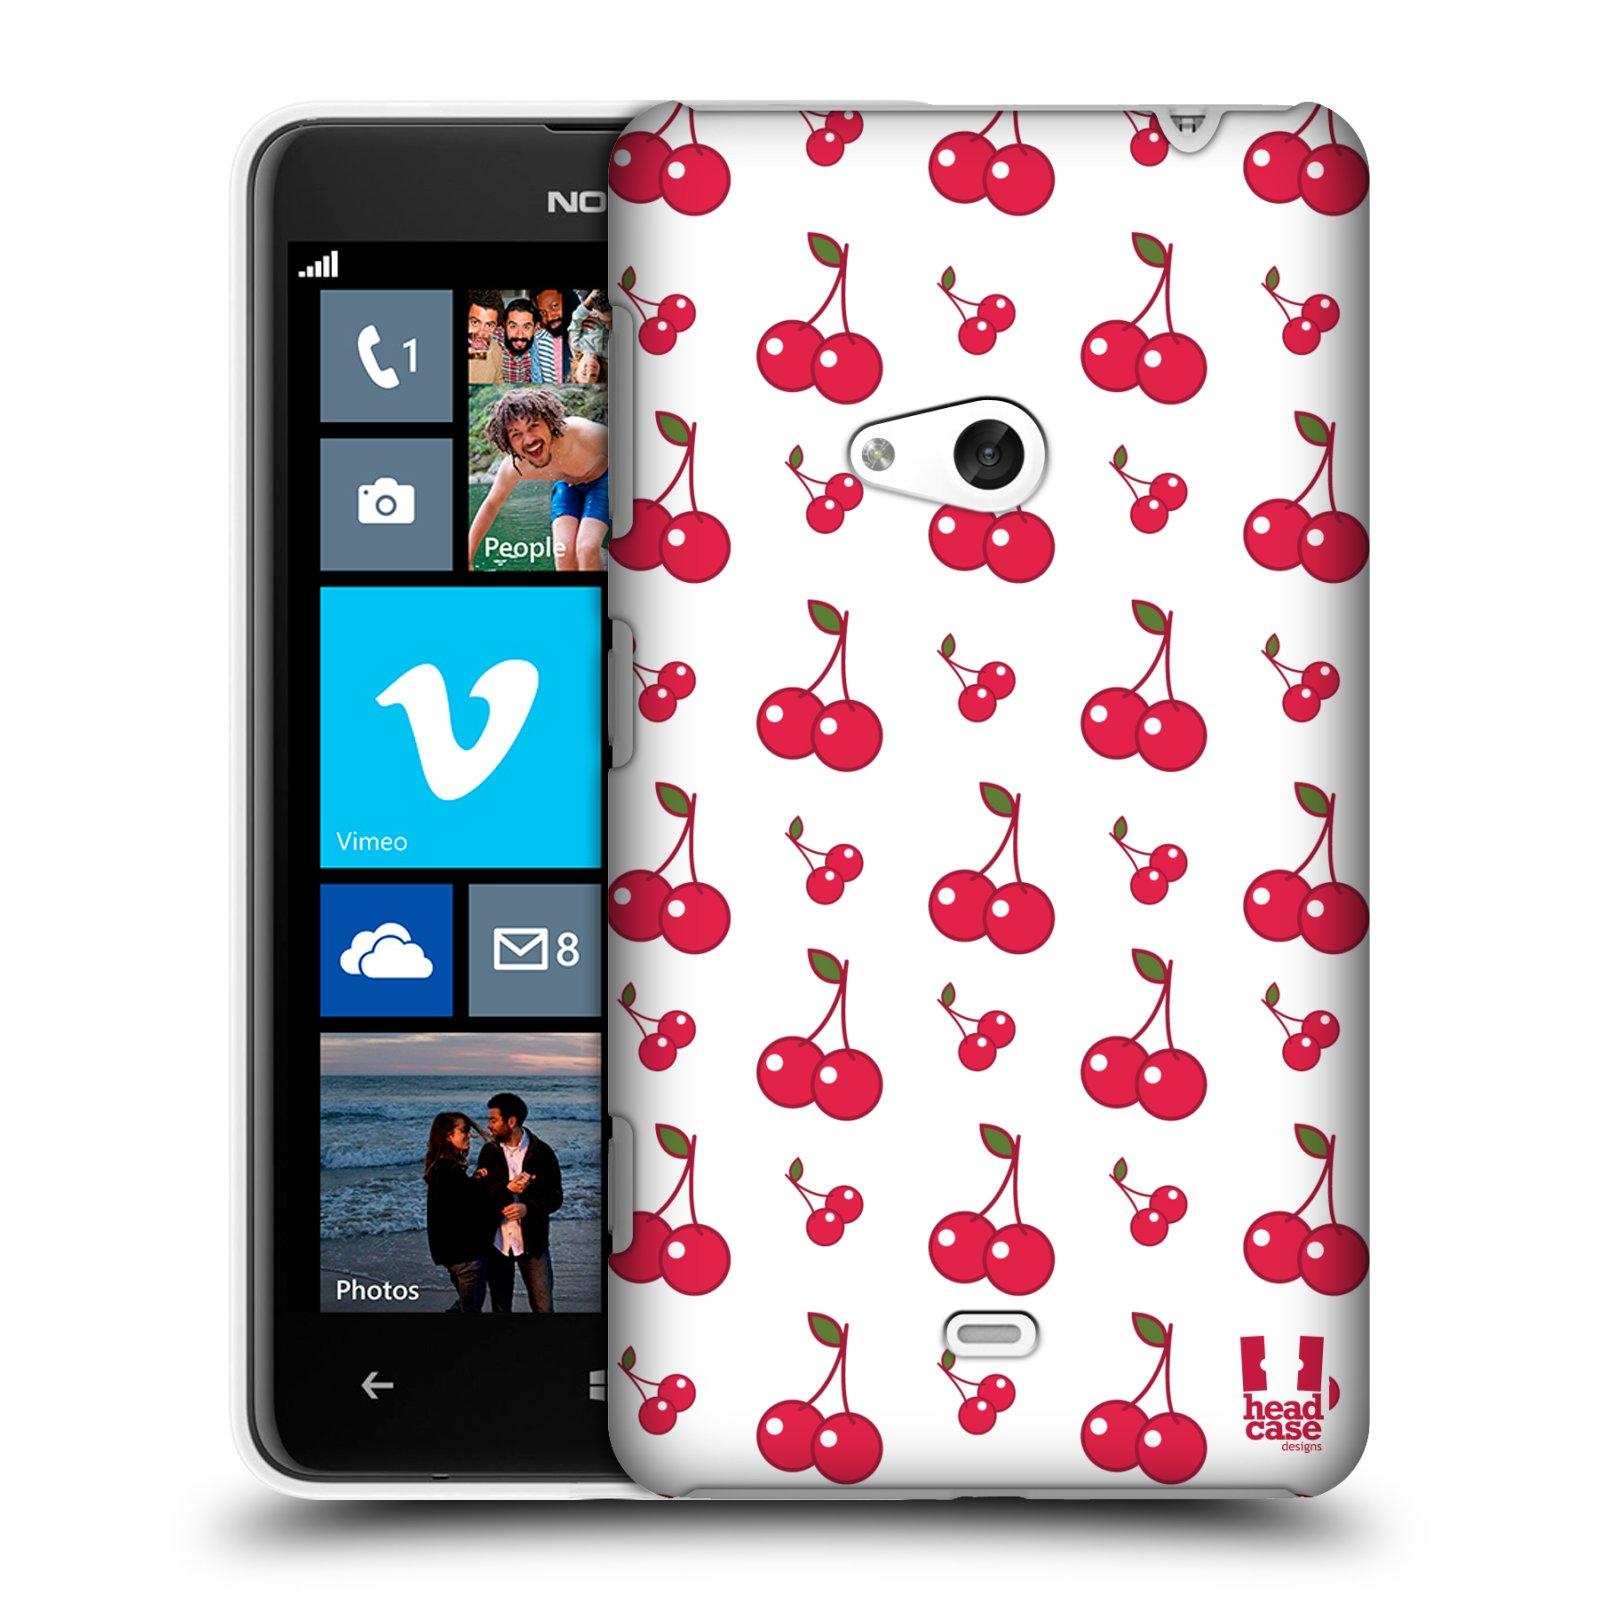 HEAD CASE DESIGNS FRUIT PATTERN BATCH 1 HARD BACK CASE COVER FOR NOKIA LUMIA 625